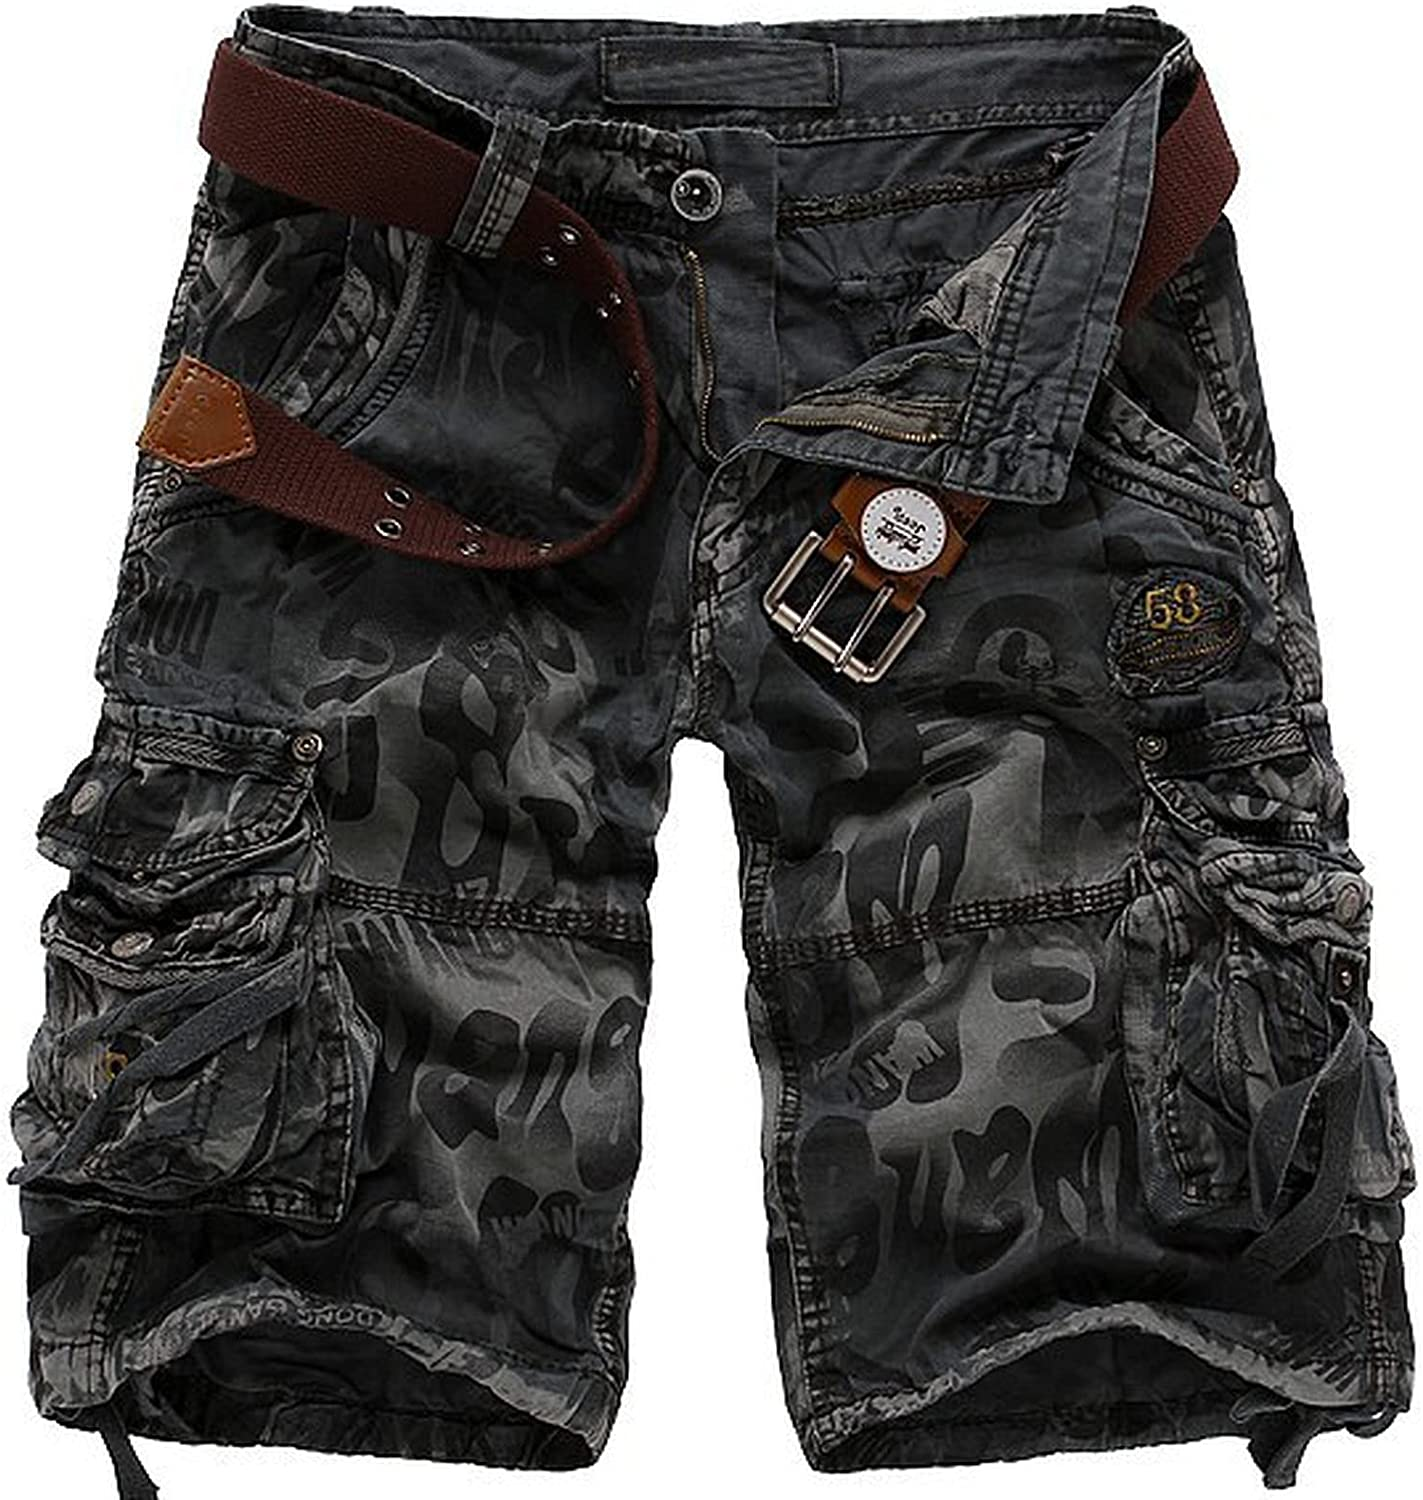 Brand new Sukyy New Cargo Short Summer Jeans Militar Shorts Tucson Mall Men Camouflage